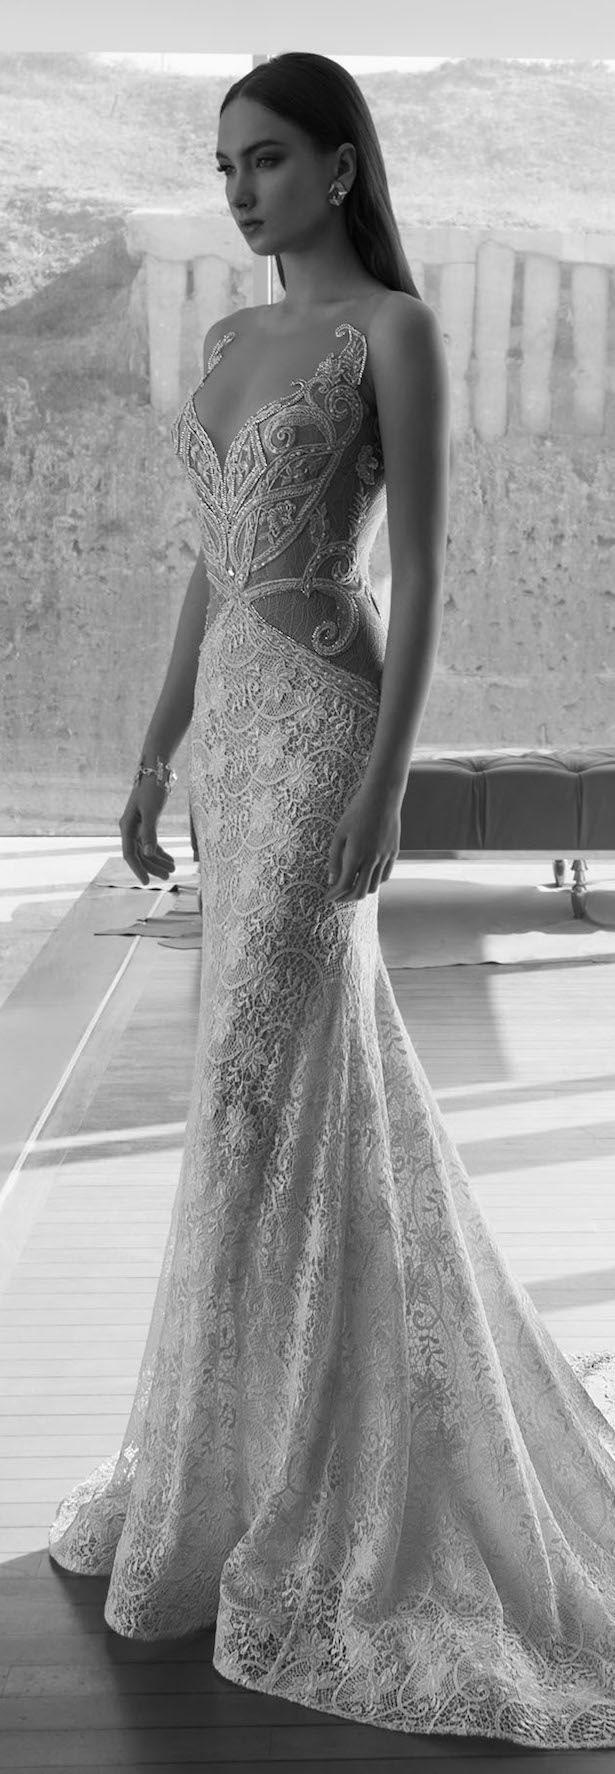 Lovely and very sexy wedding dress